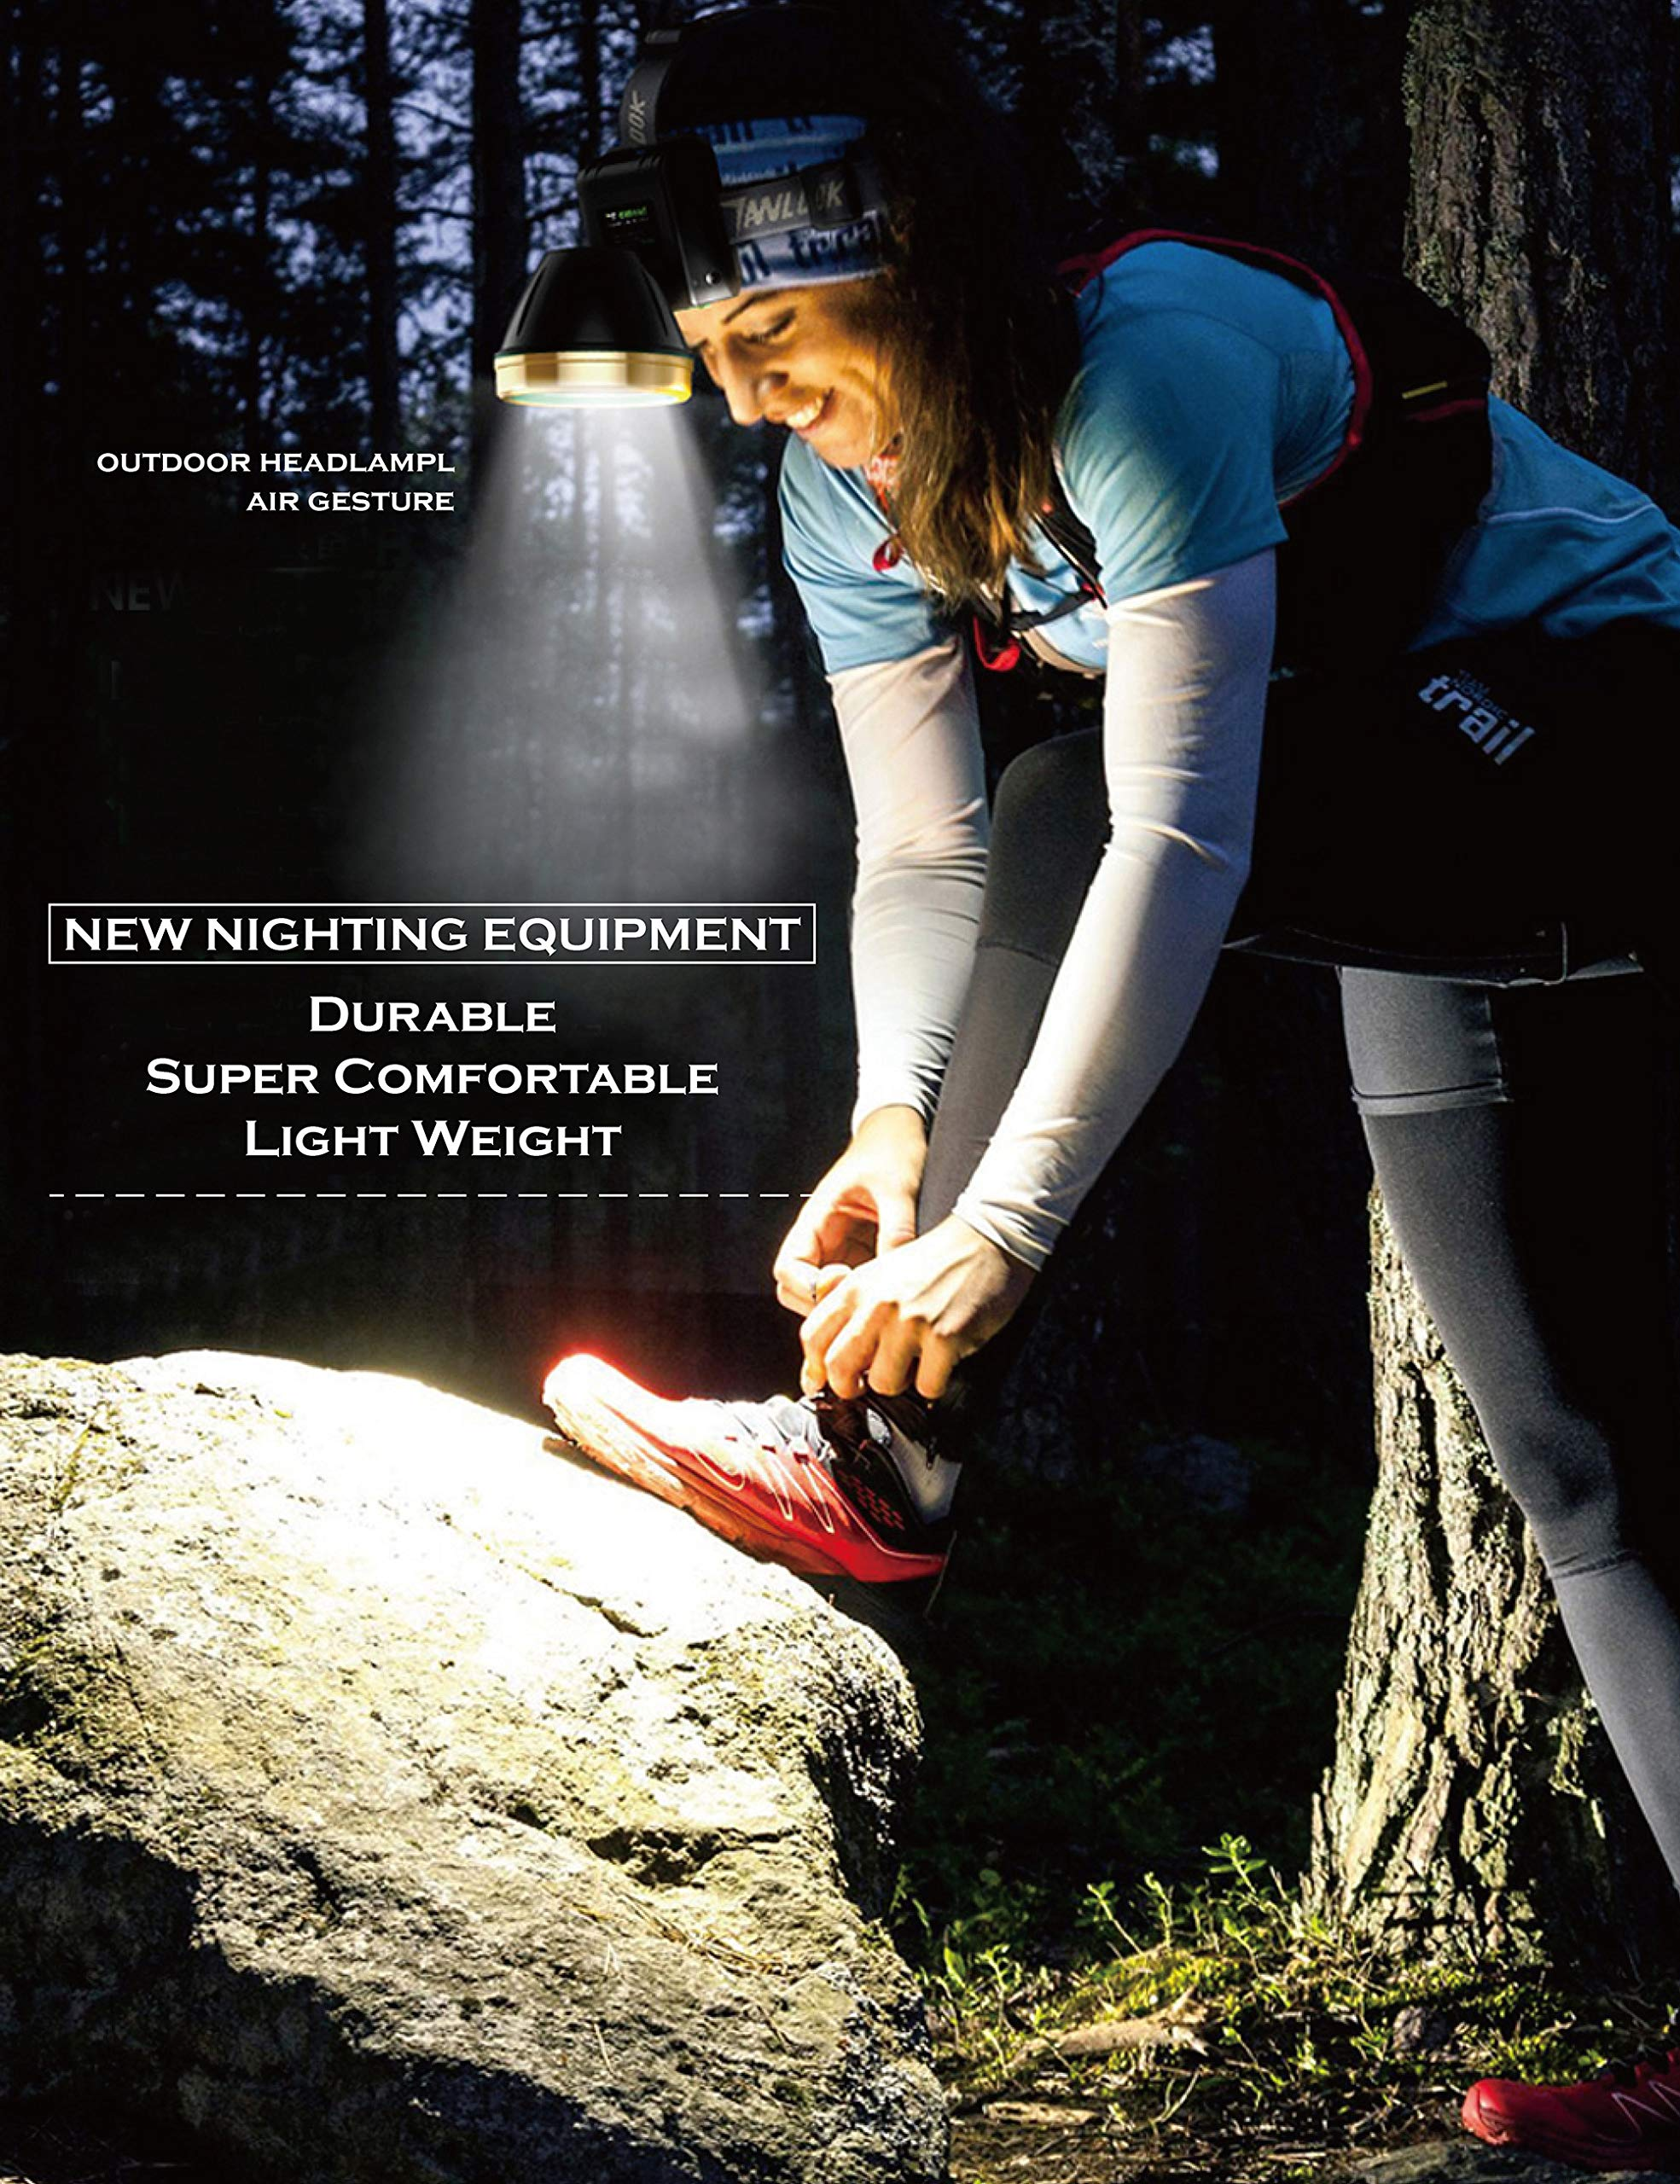 LED Headlamp, LED Headlamp USB Rechargeable, LED Headlamp Flashlight, Outdoor USB LED Headlamp, Waterproof with 2 Lighting Modes, Battery Powered Swivel LED Headlight for Camping and Hiking by Cavepop (Image #7)